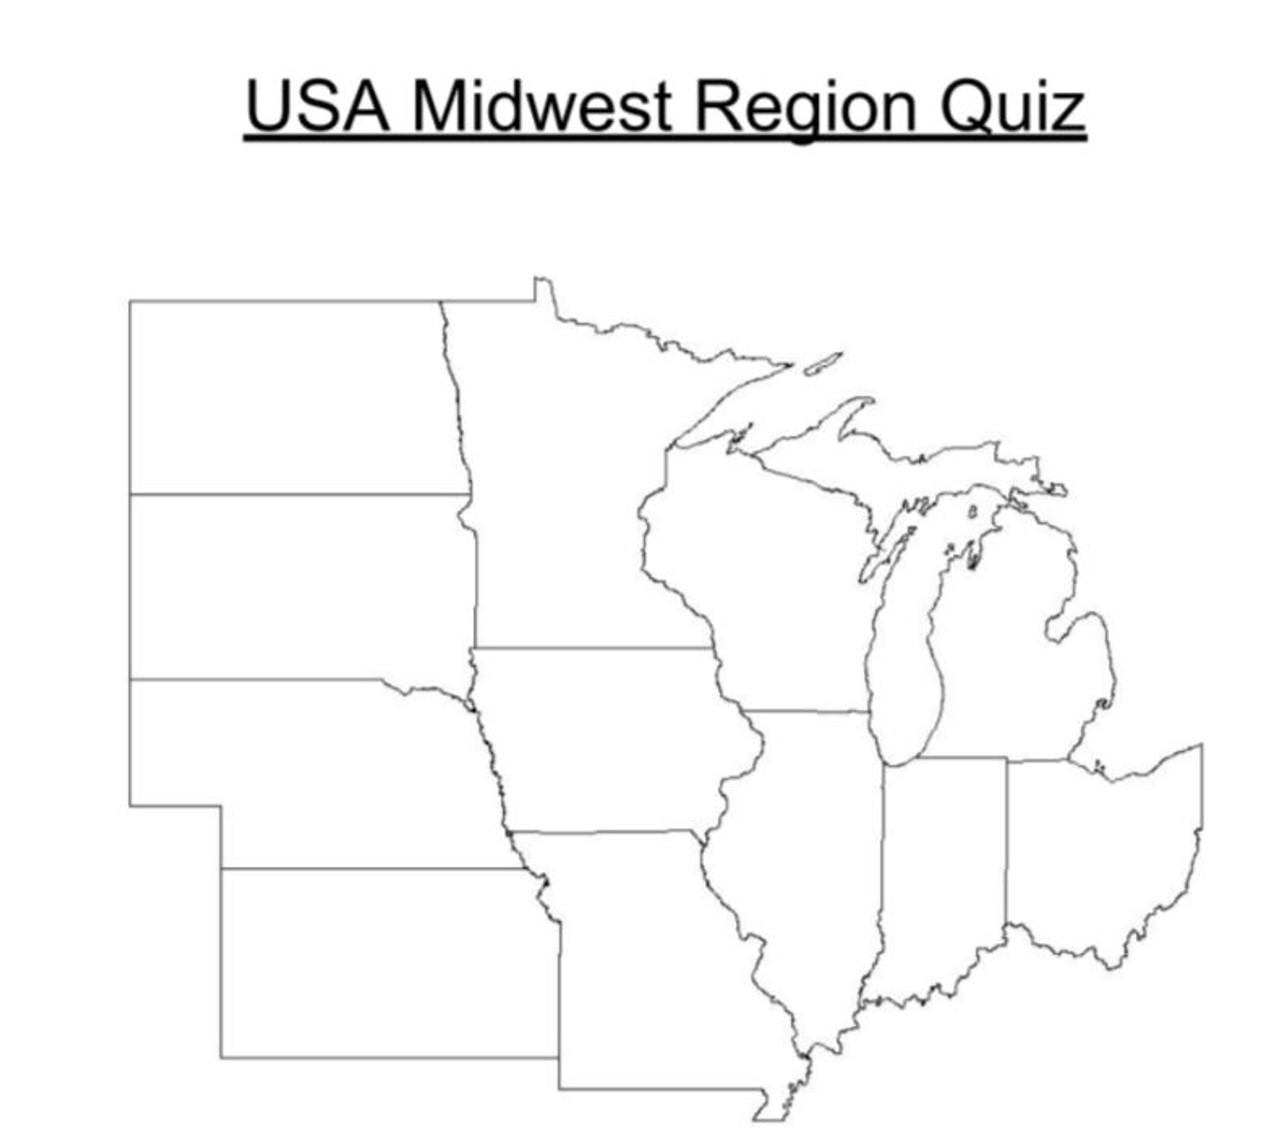 hight resolution of USA Midwest Region Quiz - Amped Up Learning